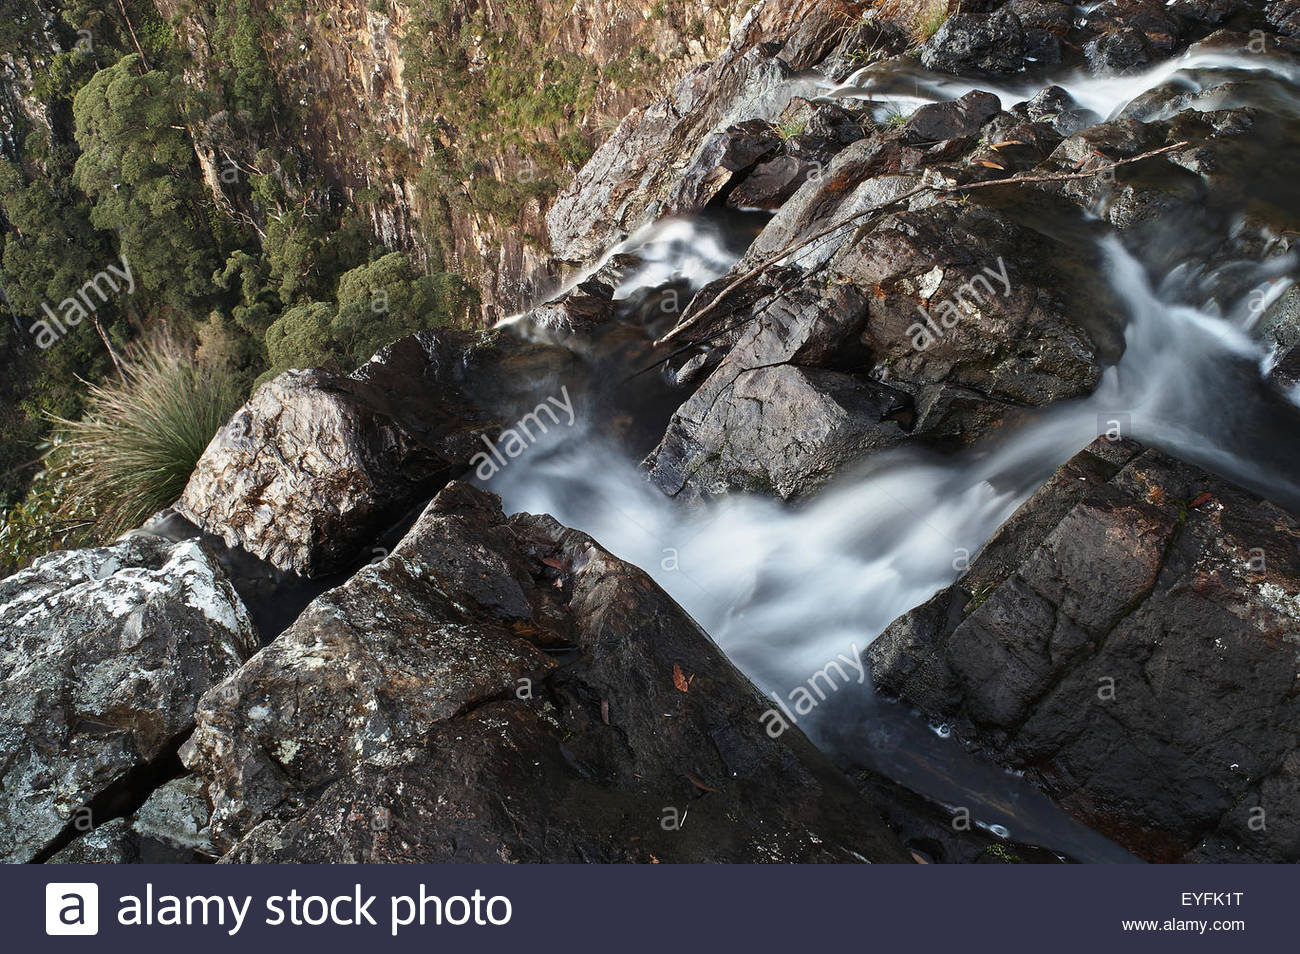 Long-exposure image taken looking over the edge of Minyon Falls, water disappearing and trees beyond; on Repentance - Stock Image